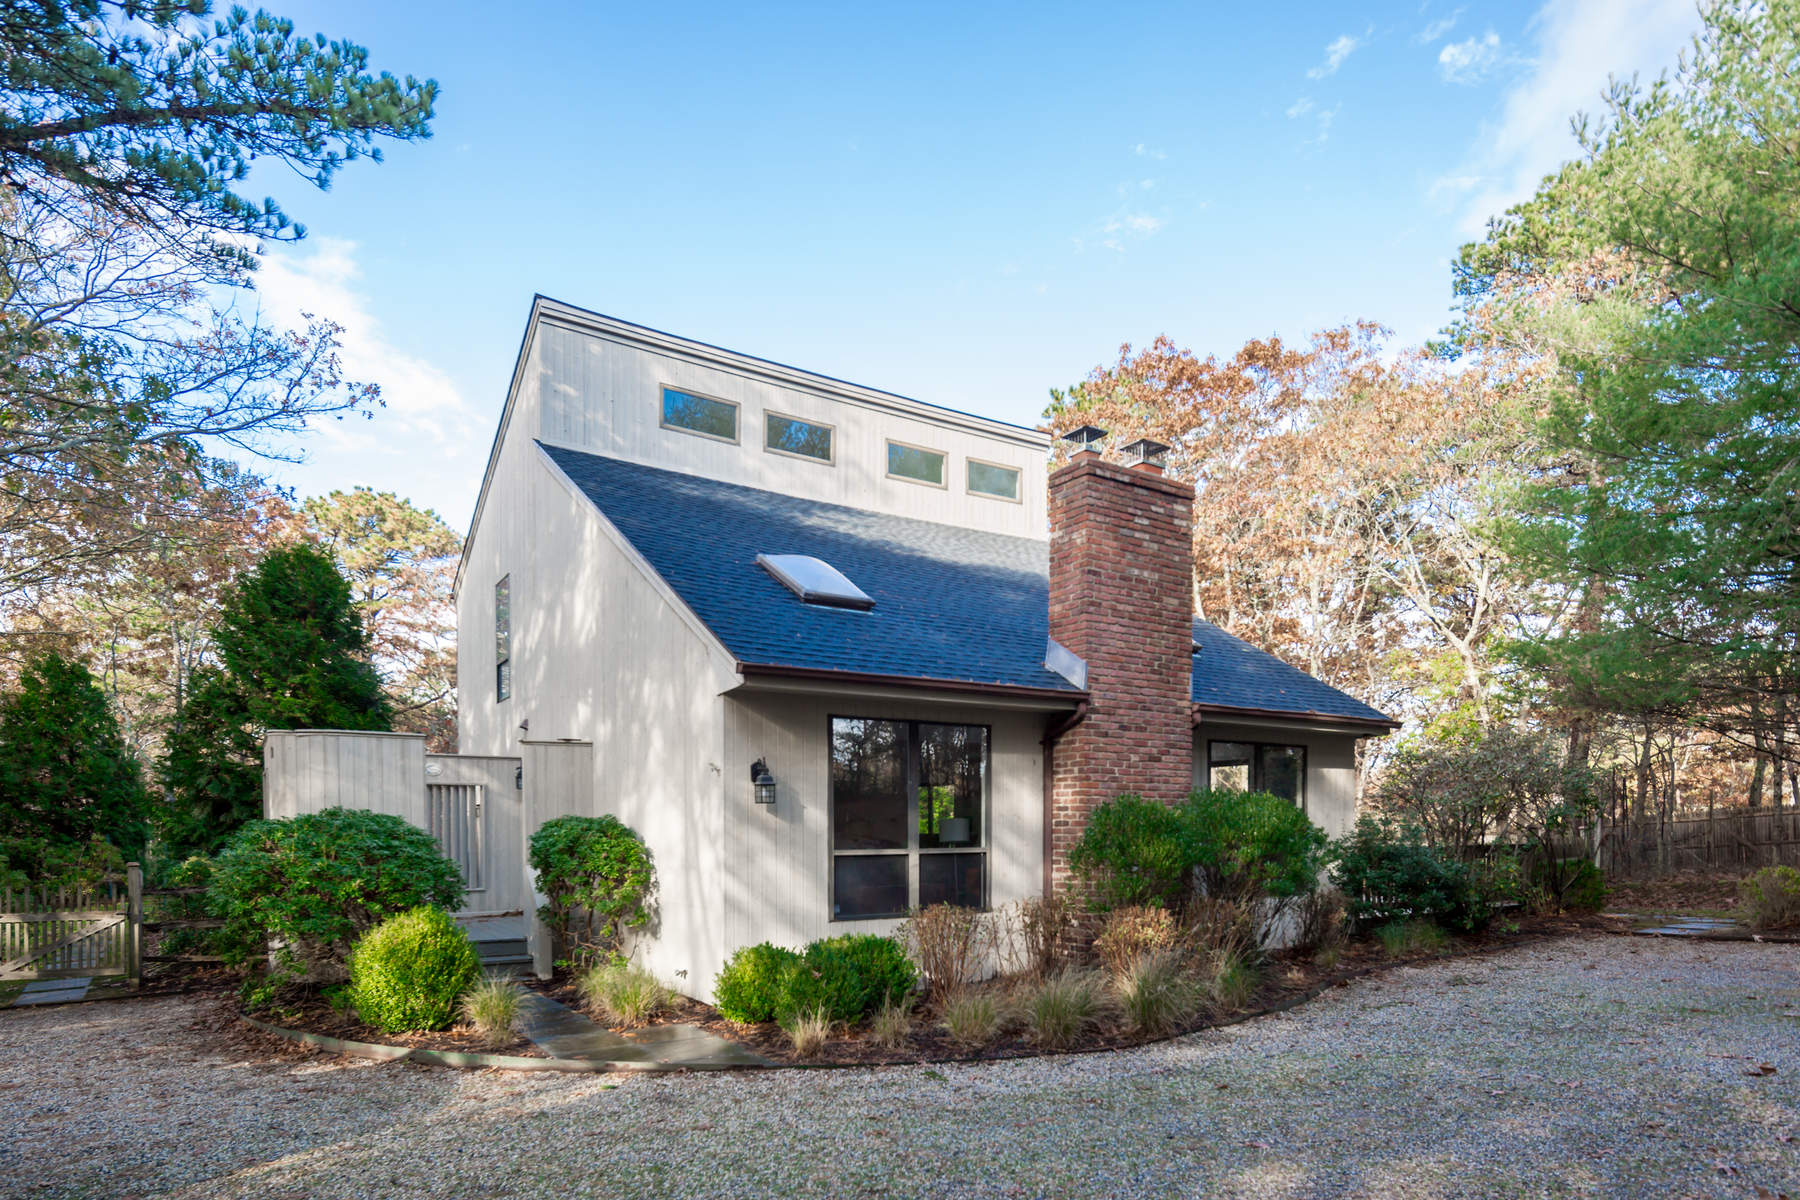 Single Family Home for Rent at Private Wainscott Traditional Wainscott, New York 11975 United States